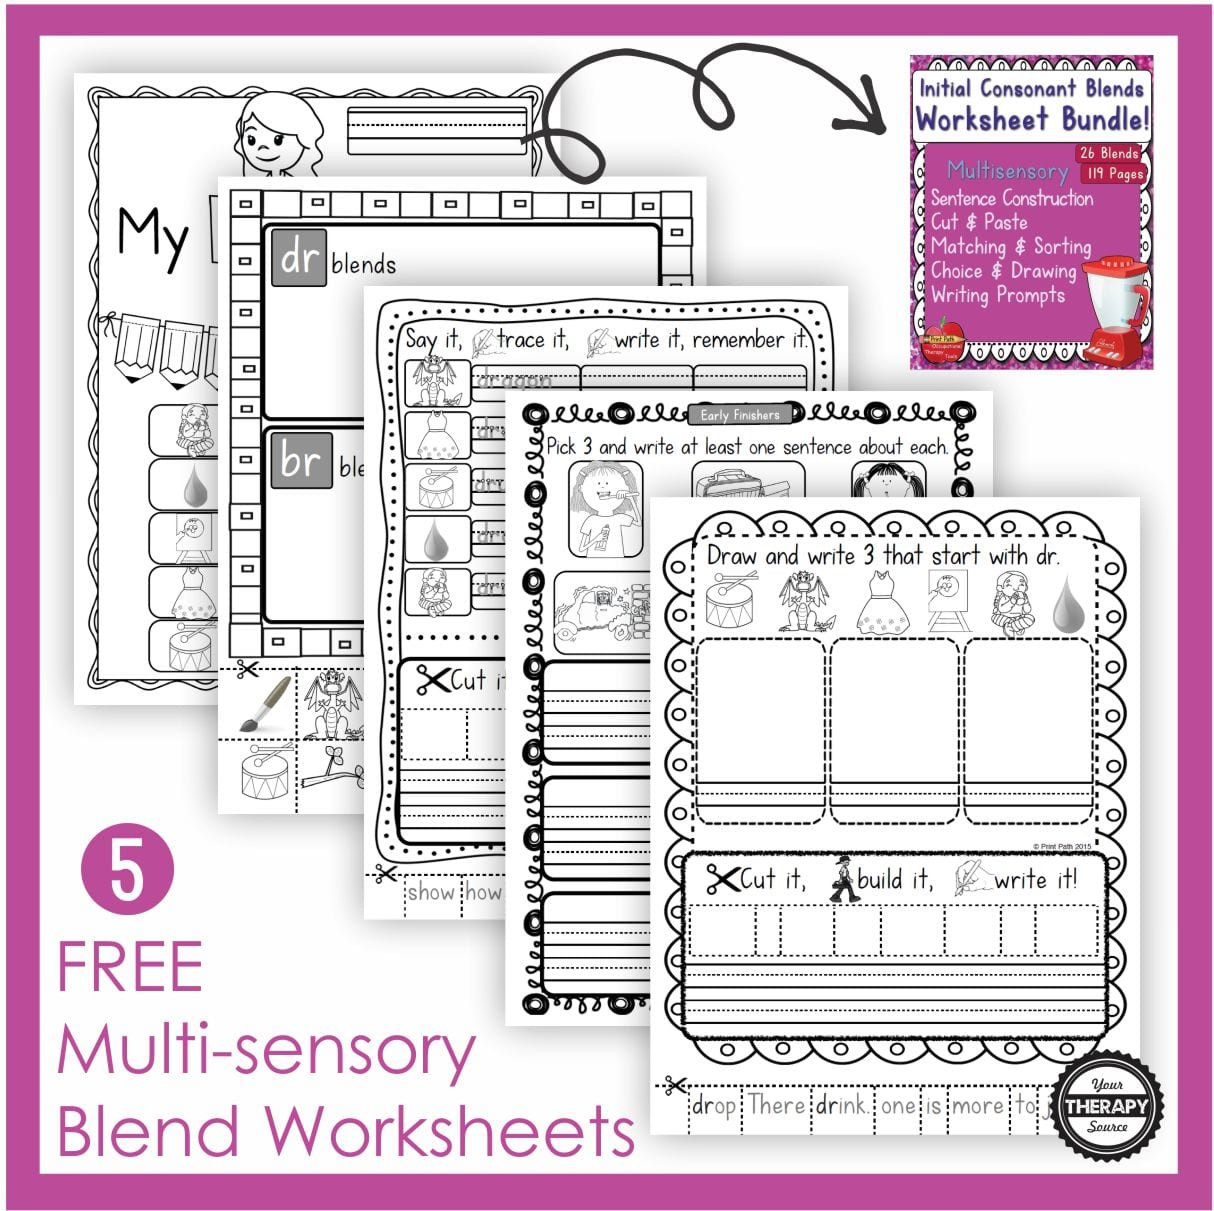 Free Printable Blends Worksheets Free Blends Worksheets Multisensory Learning Your